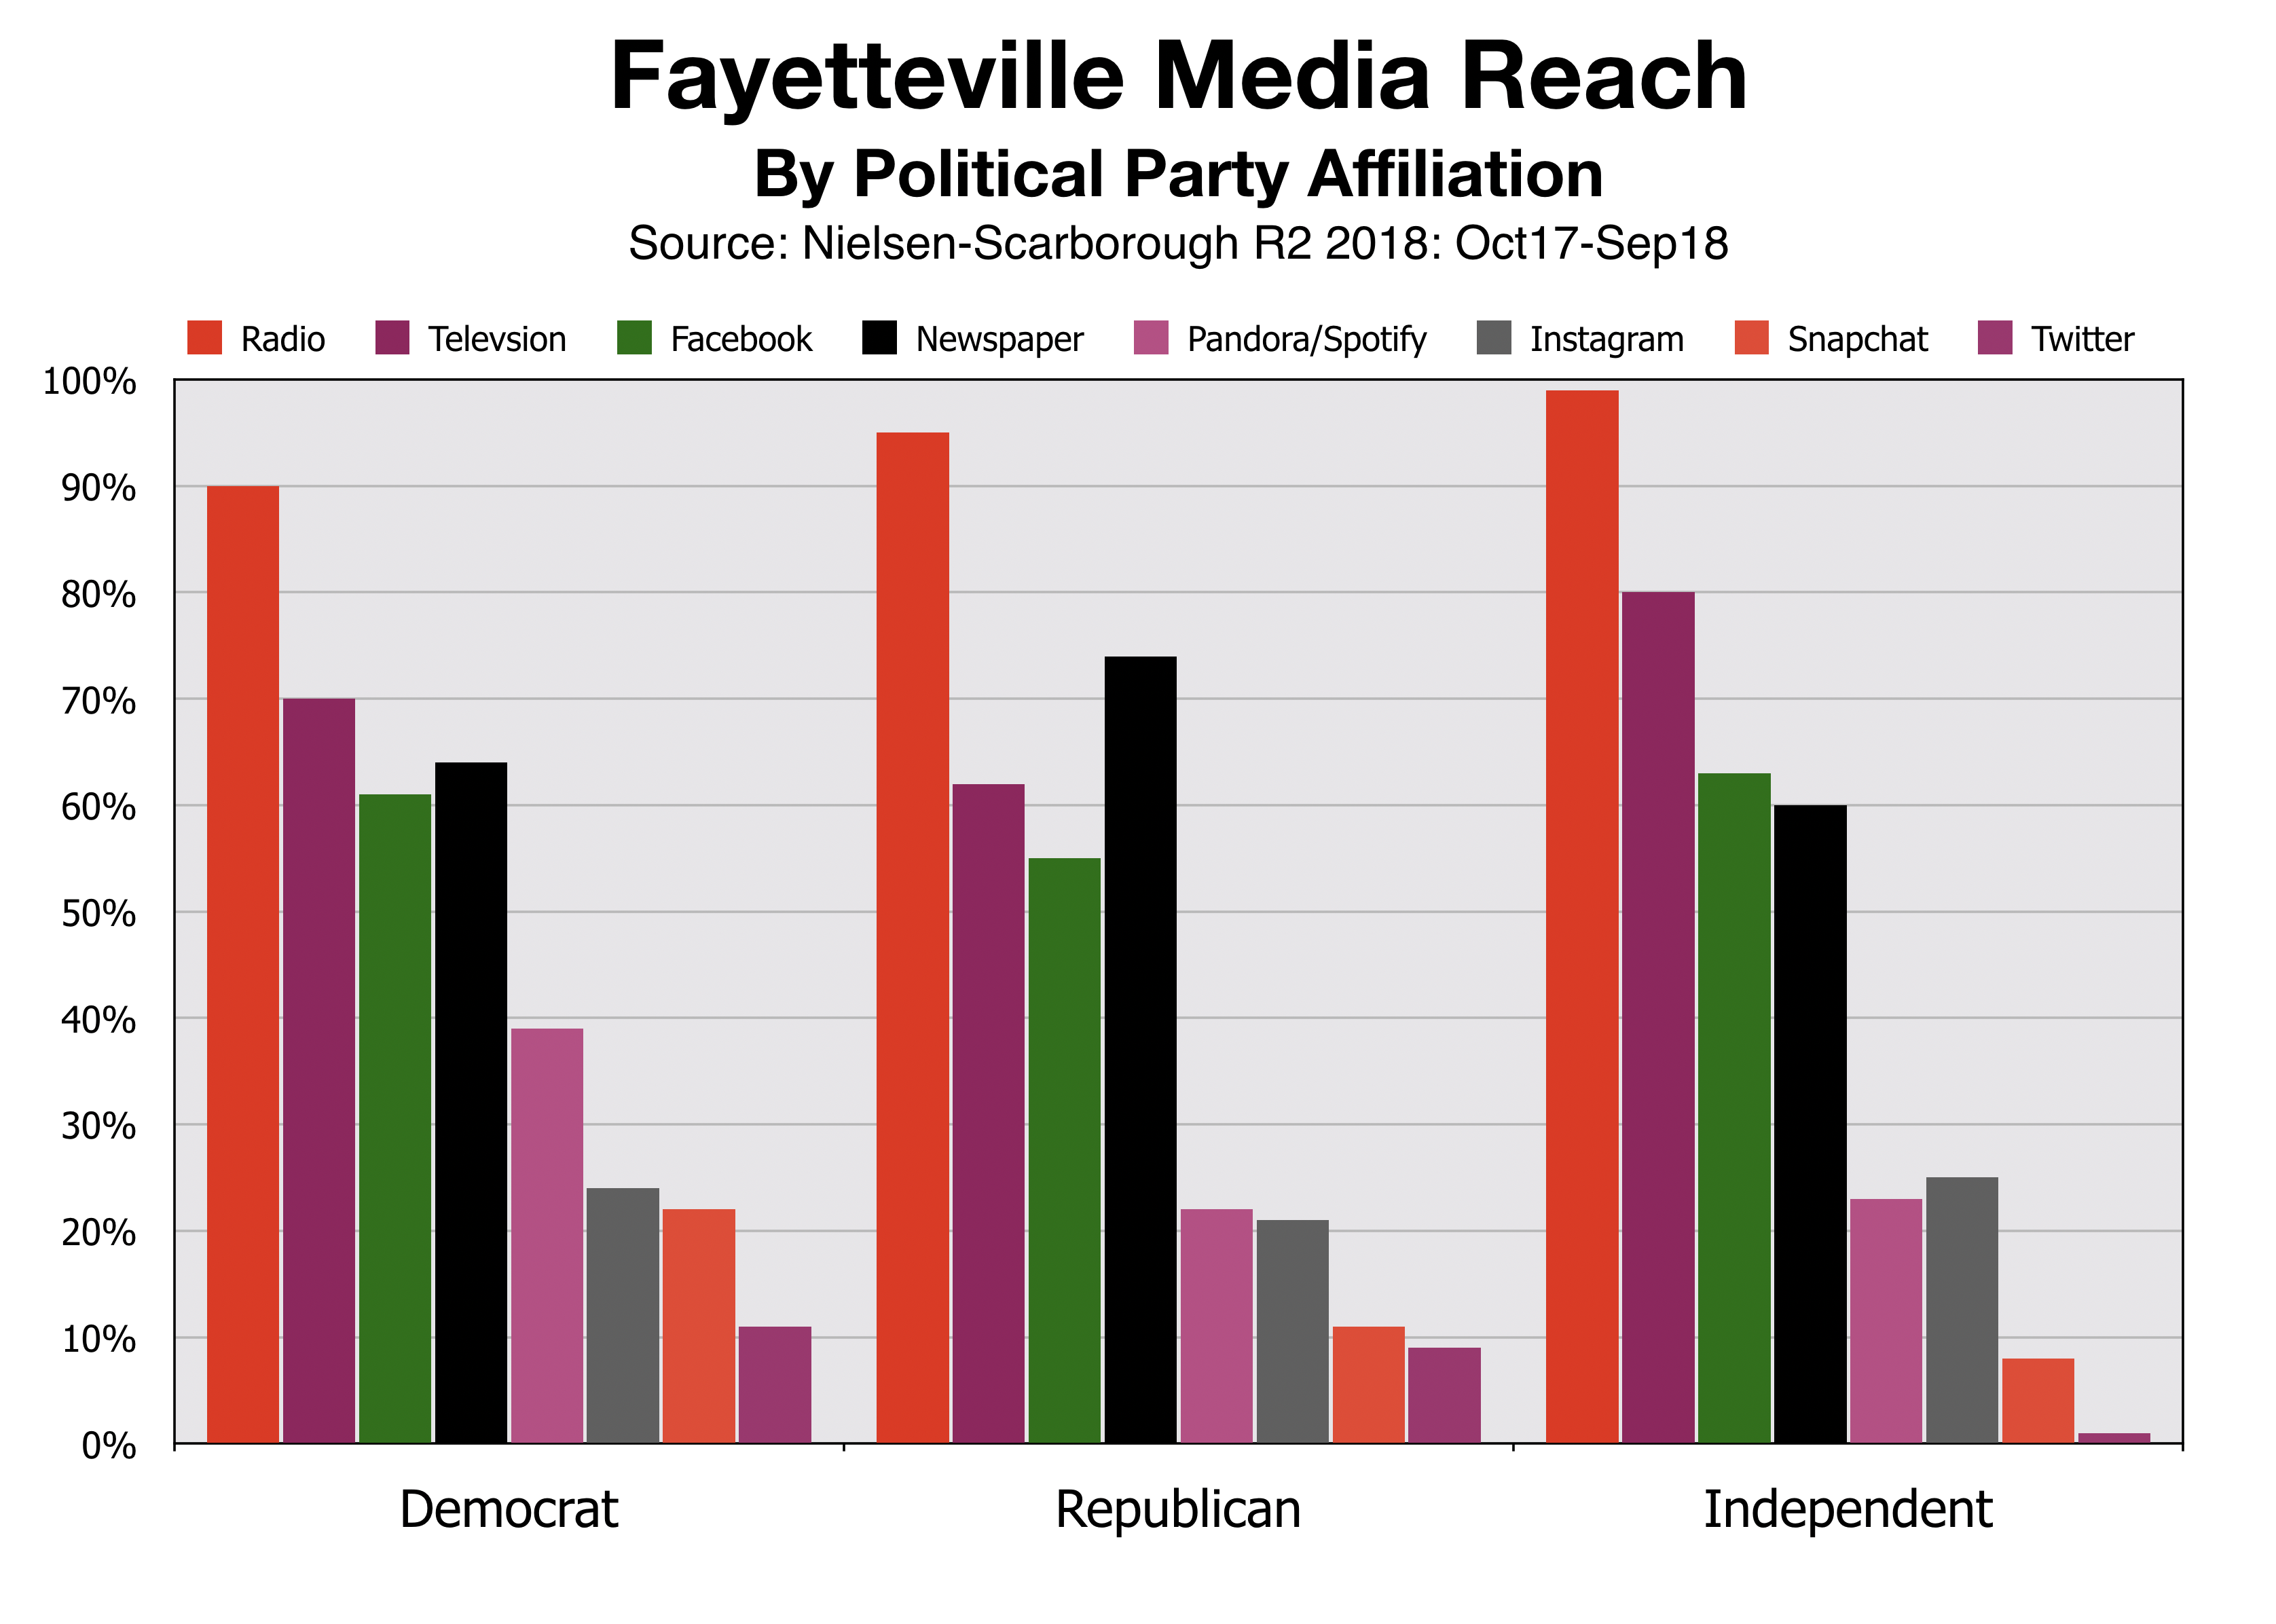 Advertise In Fayetteville Reach By Political Party Affiliation